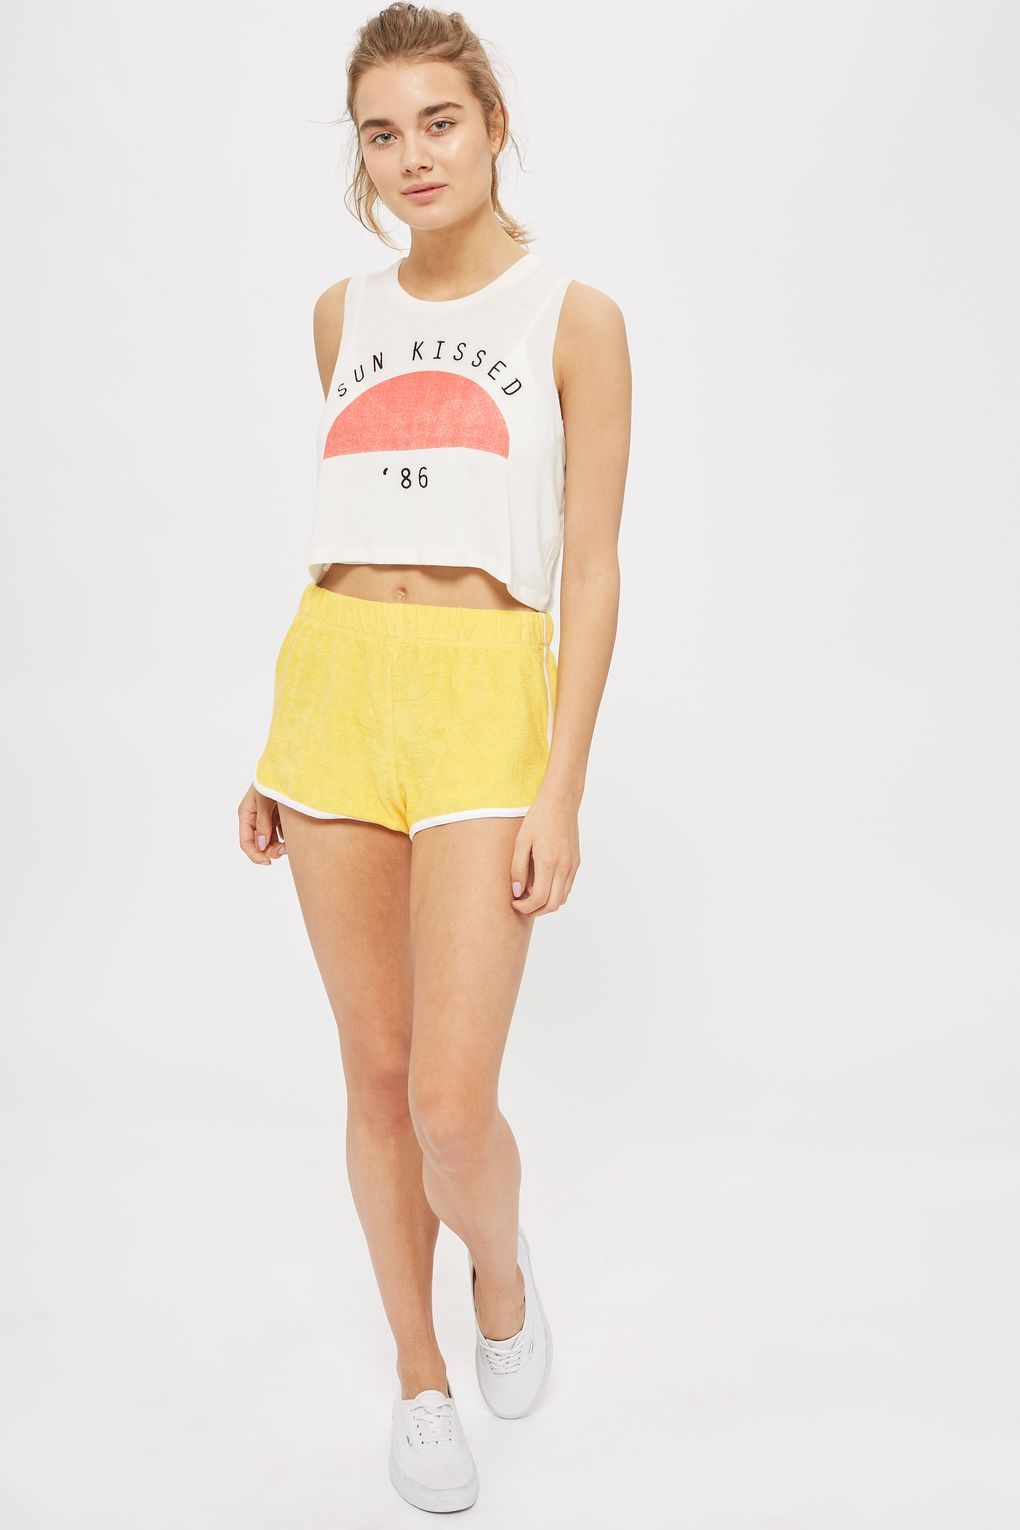 149dd11f23 Towelling Runner Shorts - New In Fashion - New In - Topshop Europe